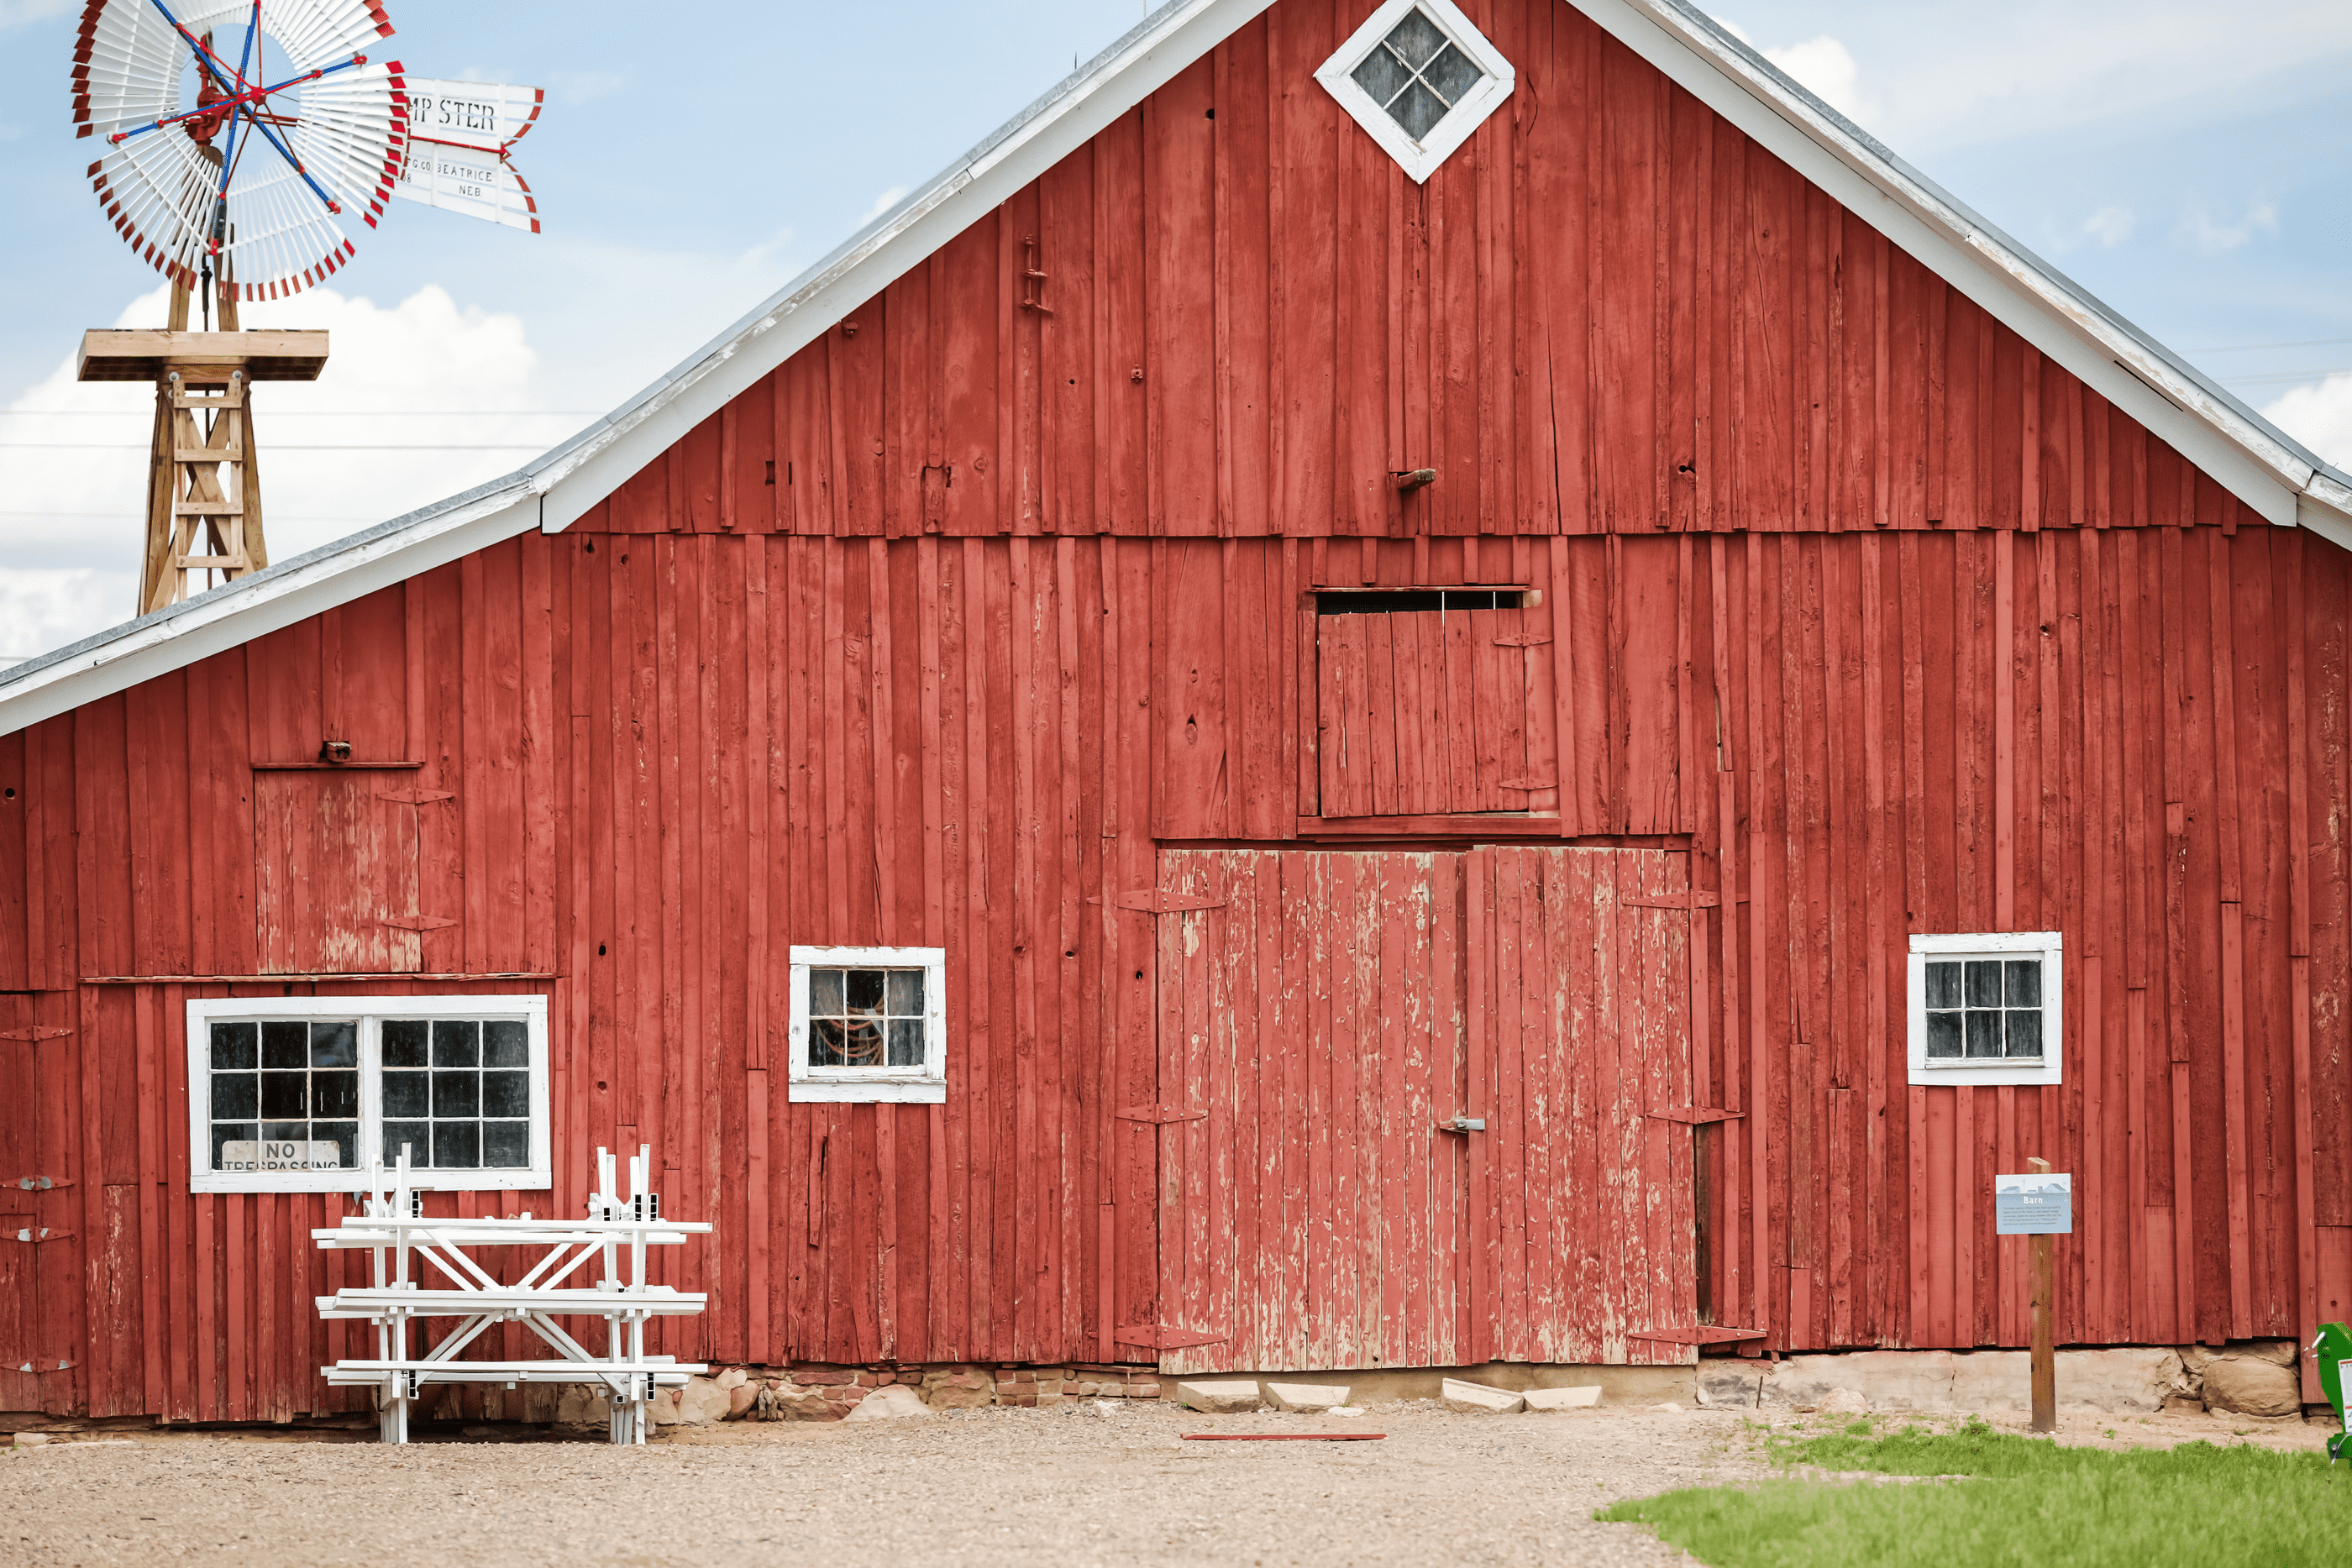 Ever Wonder Why: Red is the traditional color for barns?